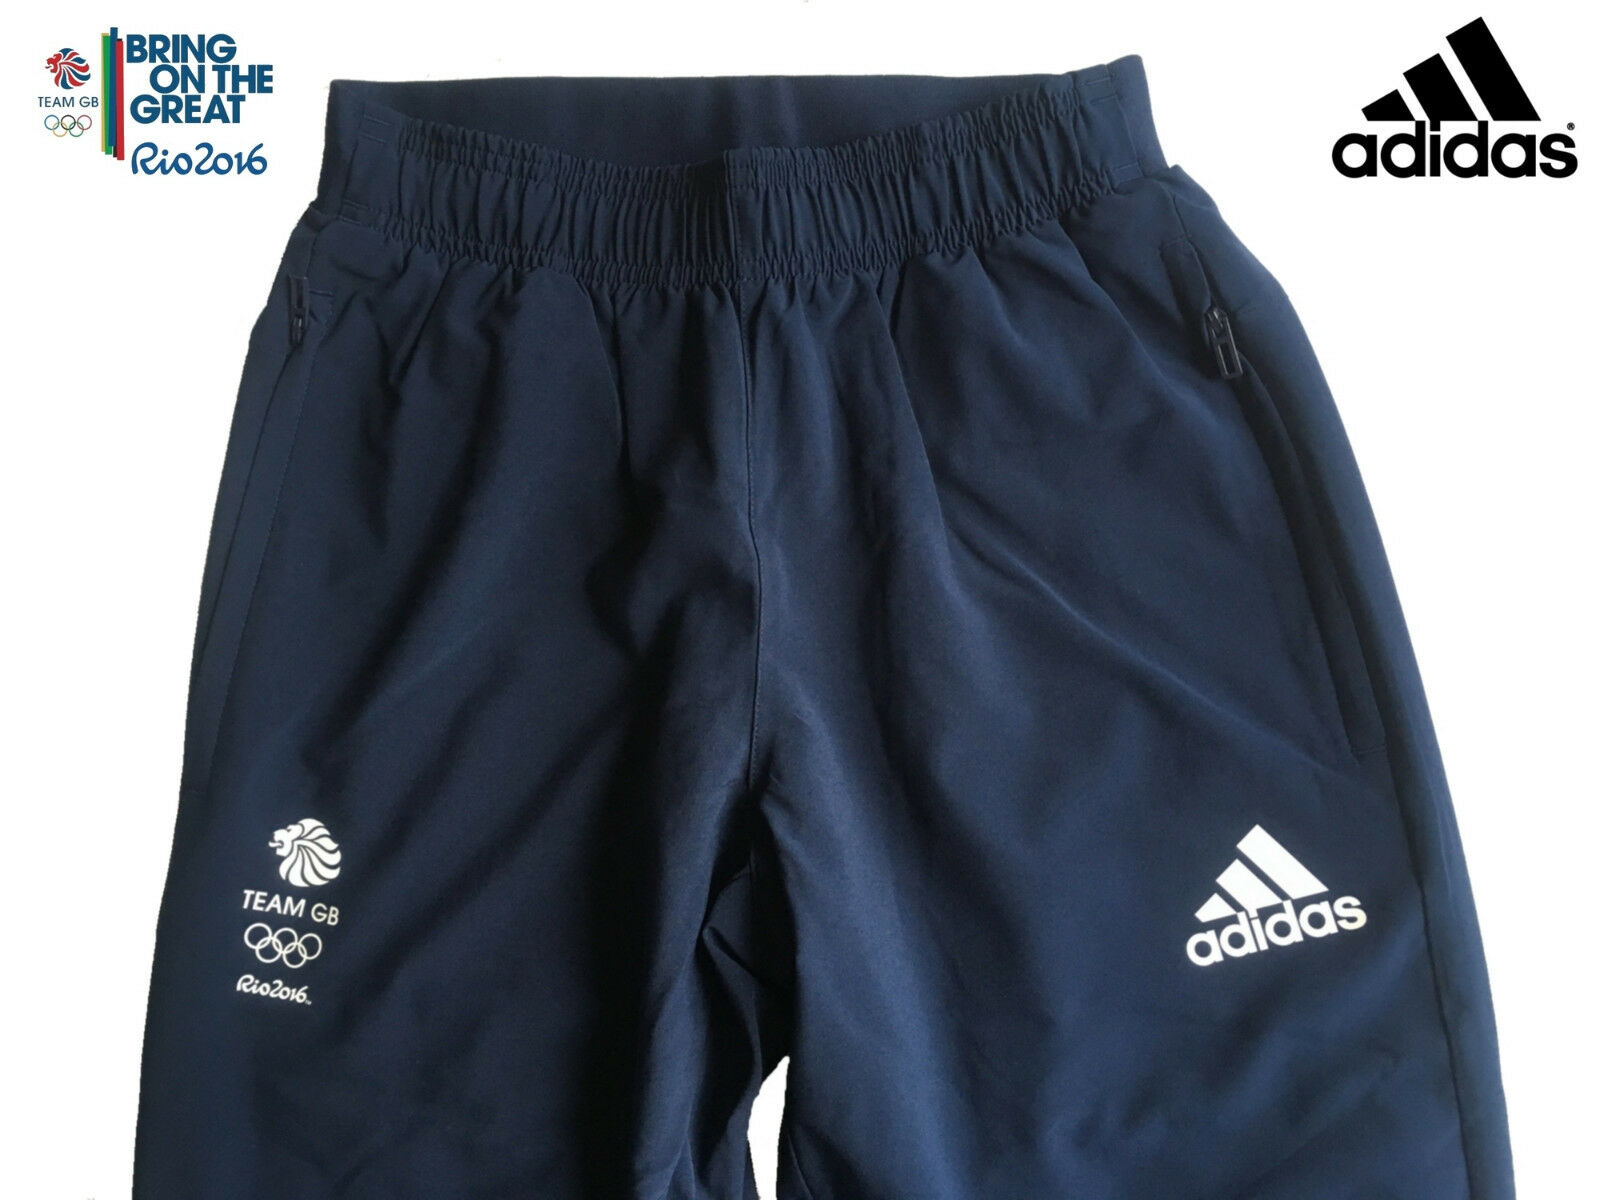 ADIDAS TEAM GB RIO 2016 ELITE ATHLETE OLYMPIC PRESENTATION PANTS Size 42 L